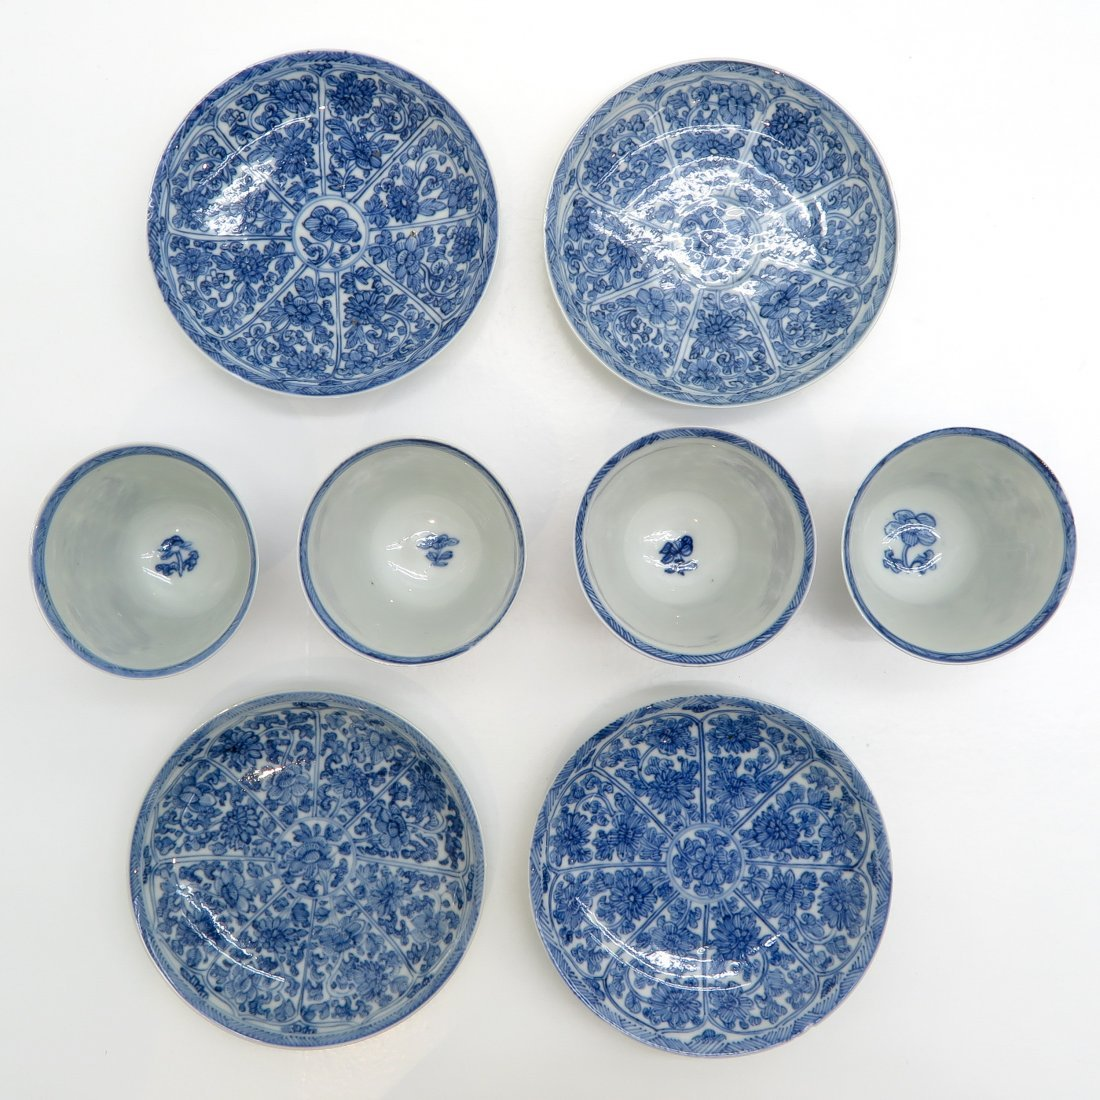 China Porcelain Cups and Saucers - 2